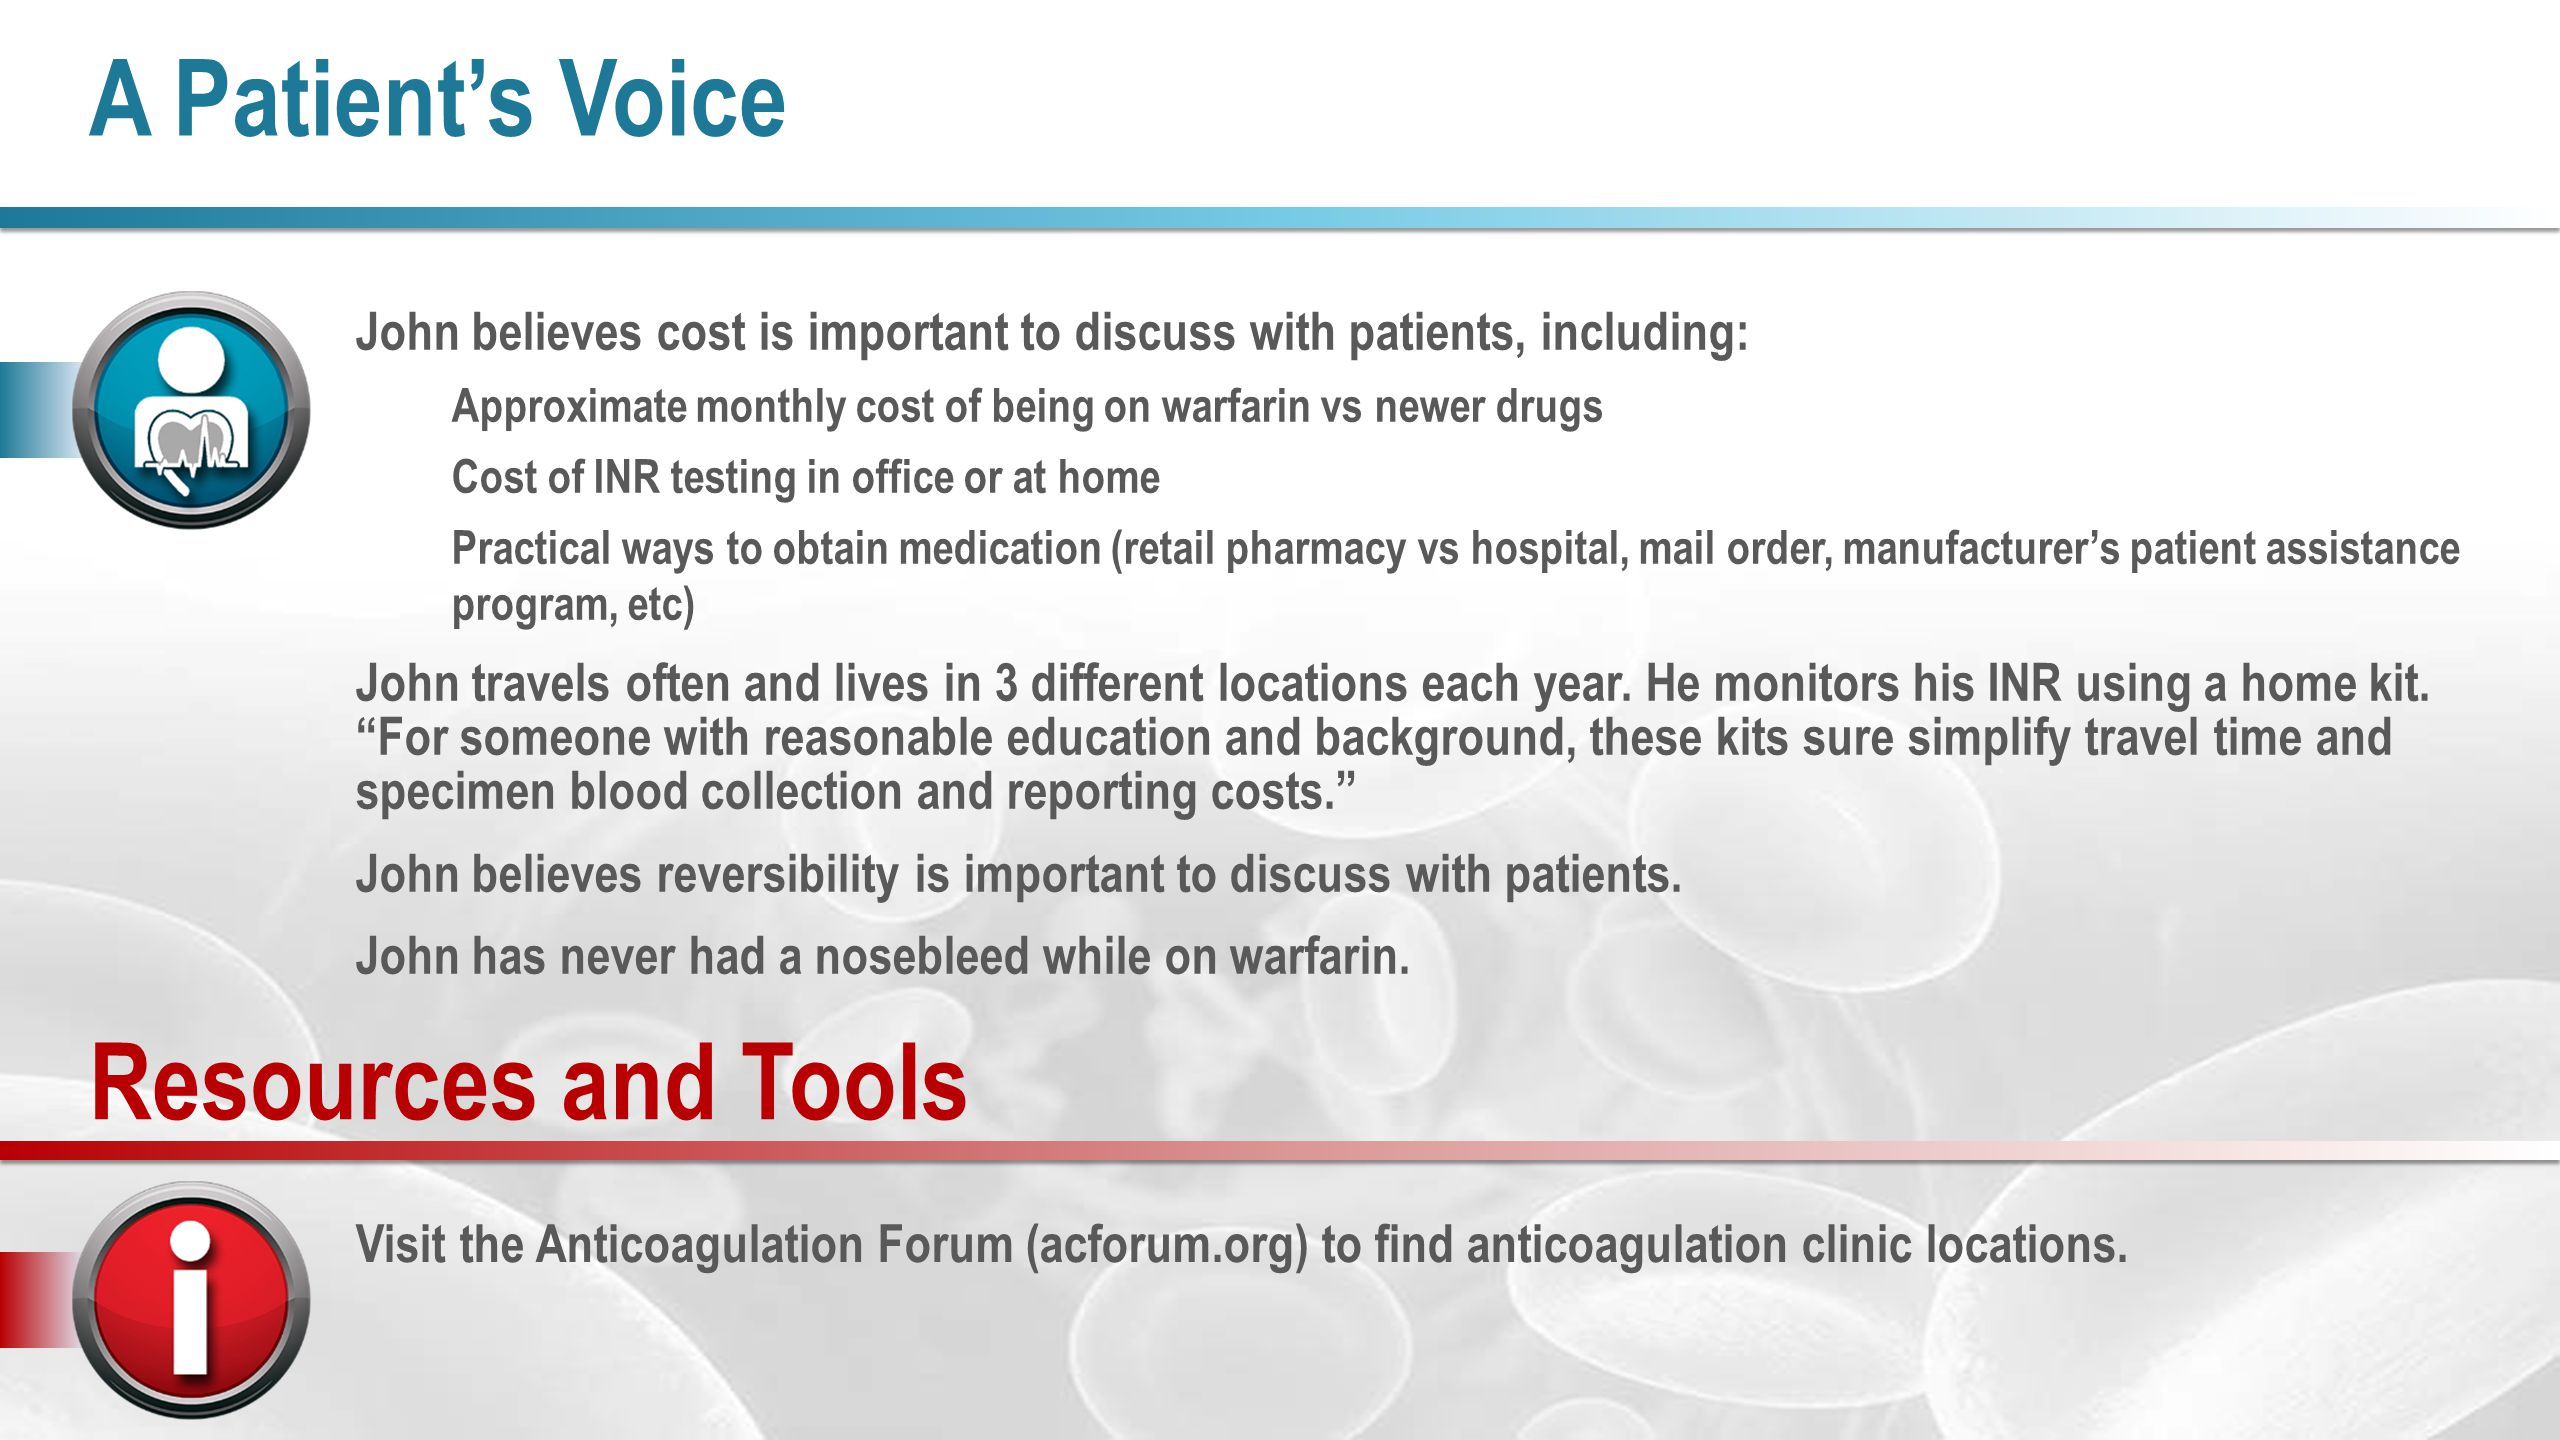 A Patient's Voice John believes cost is important to discuss with patients, including: Approximate monthly cost of being on warfarin vs newer drugs Cost of INR testing in office or at home Practical ways to obtain medication (retail pharmacy vs hospital, mail order, manufacturer's patient assistance program, etc) John travels often and lives in 3 different locations each year.